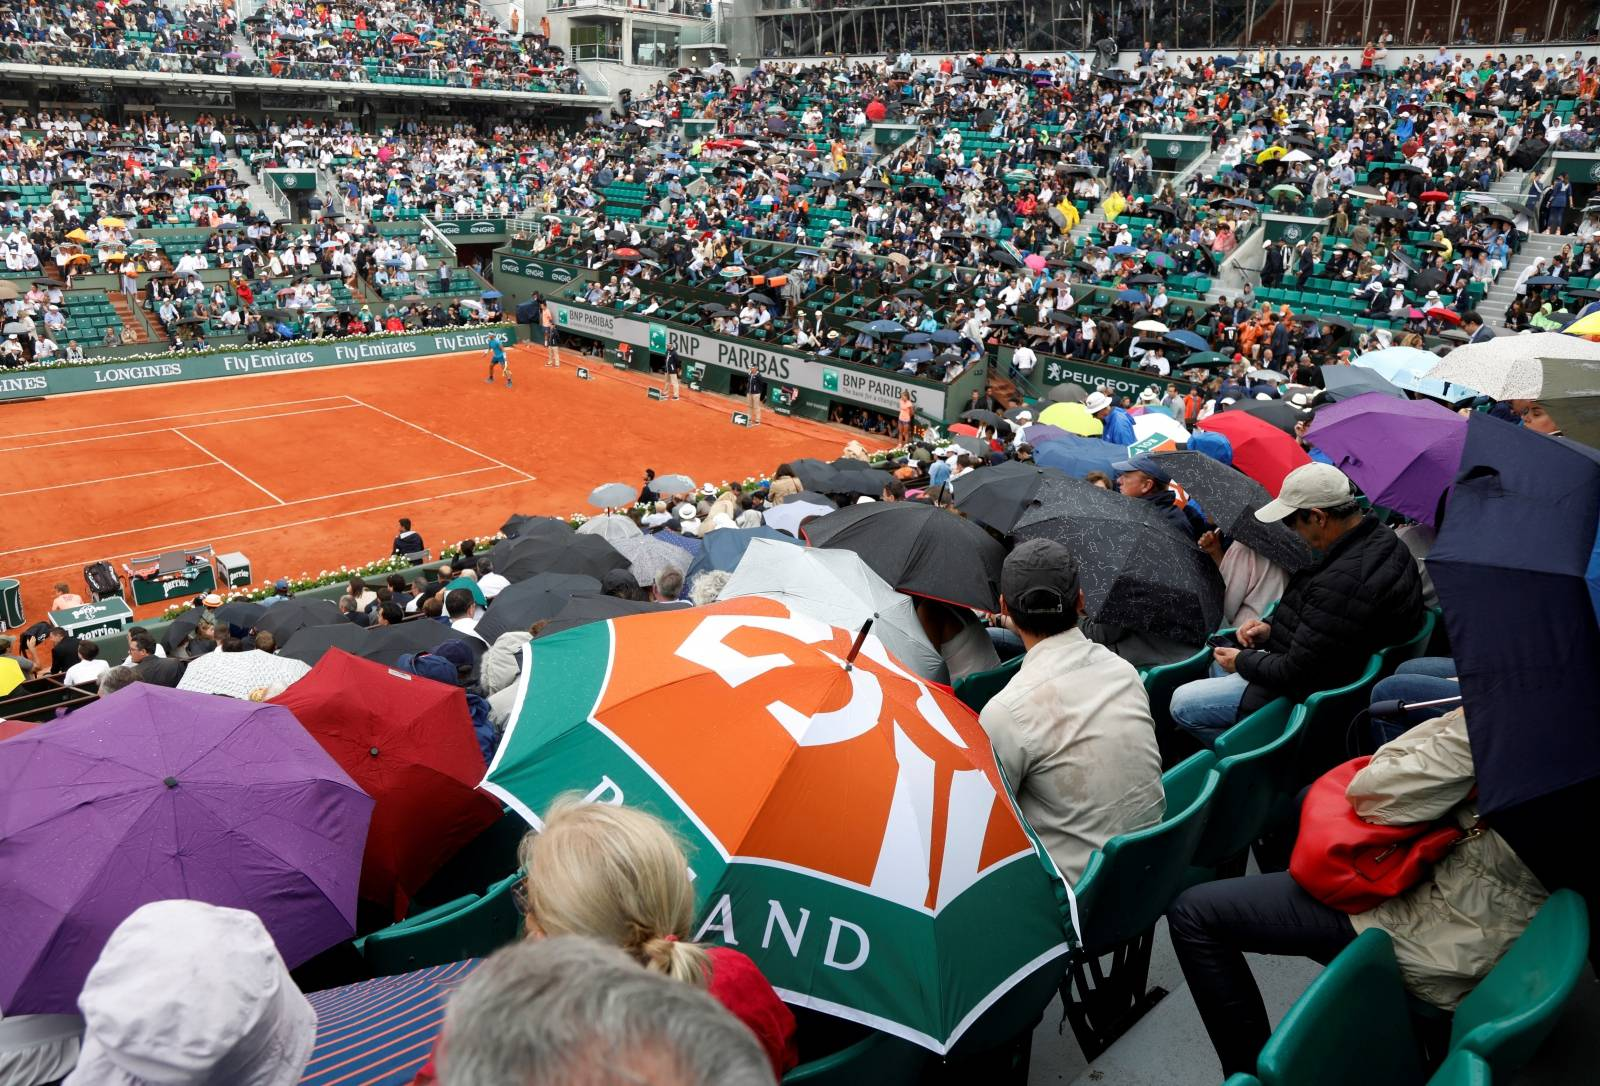 FILE PHOTO: French Open - Roland Garros